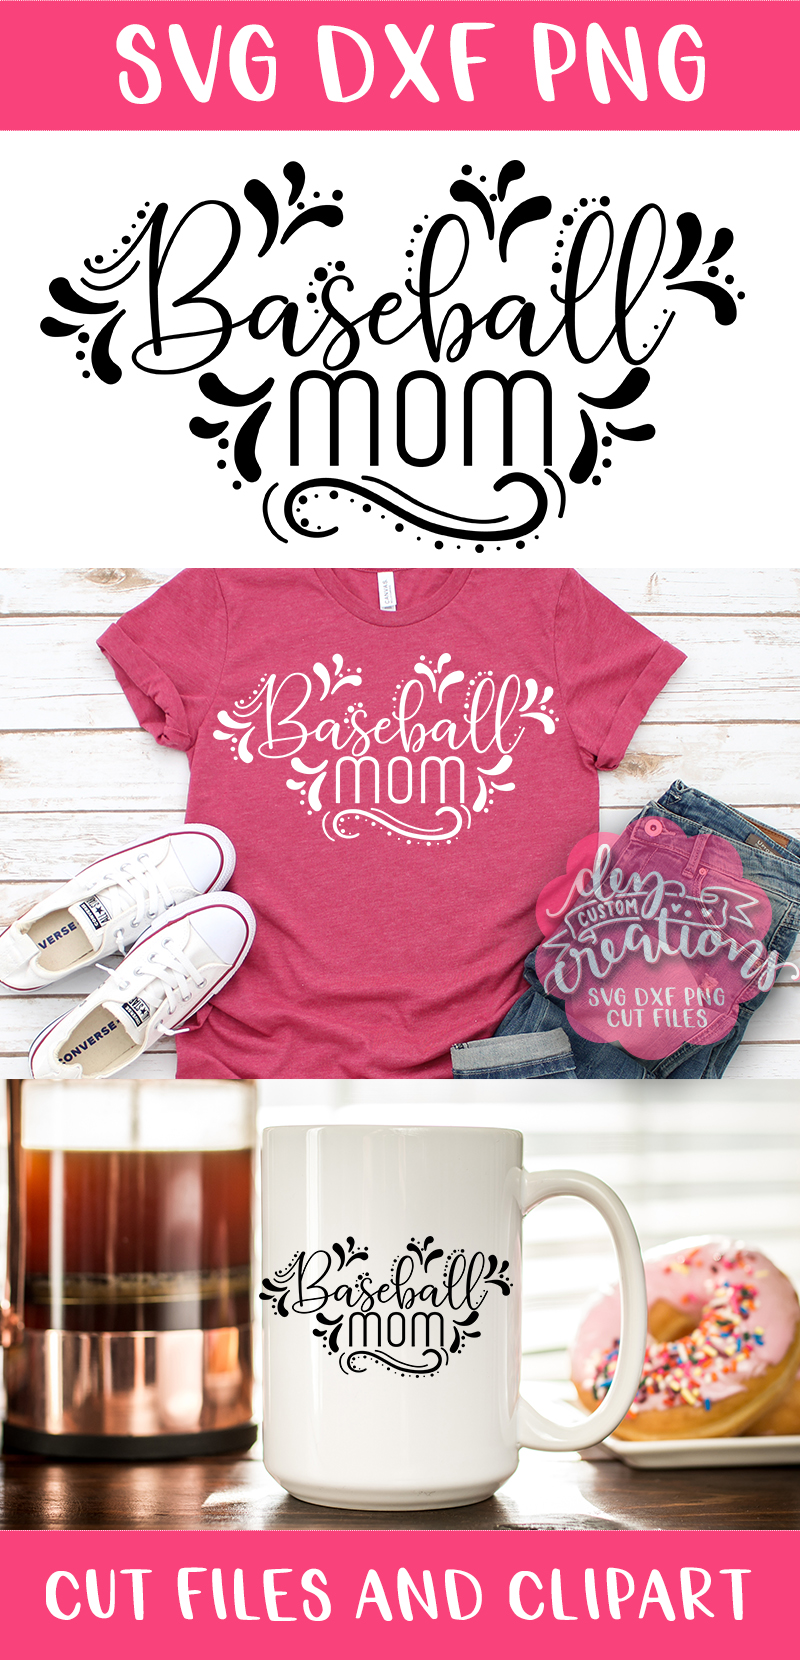 Baseball Mom - SVG DXF PNG digital Cut Files example image 3